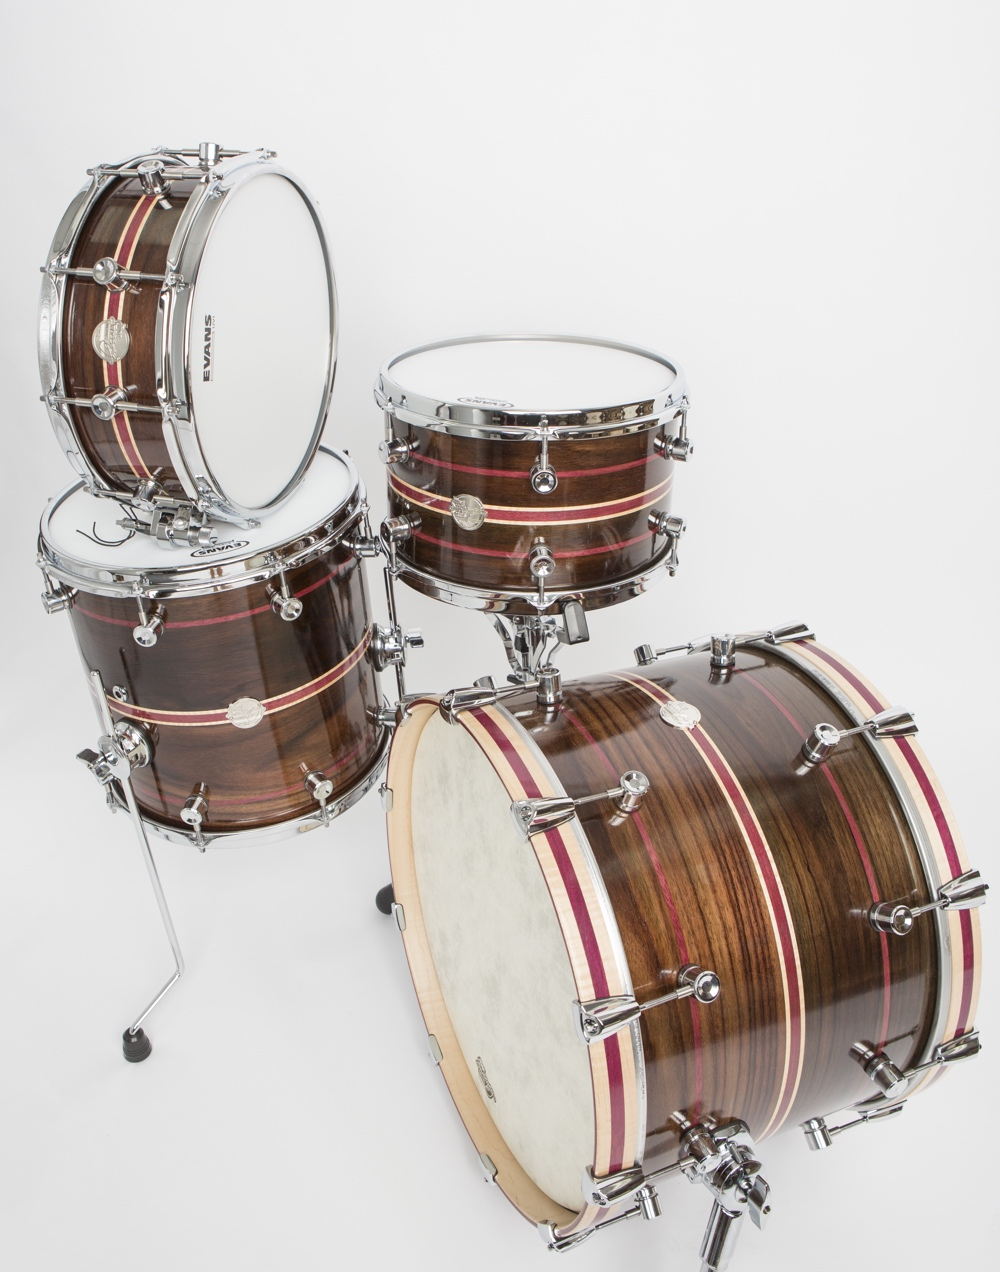 """Doc Sweeney's Panther Kit inlay (comprising a 20"""" x 14"""" bass drum; 14"""" x 14"""" and 13"""" x 8"""" mounted toms; and 14"""" x 5.5"""" snare drum) is made of steam-bent East Indian rosewood with purpleheart and maple inlays. It also features curly maple hoops with purpleheart. Have you ever seen another complete kit made of solid rosewood?"""